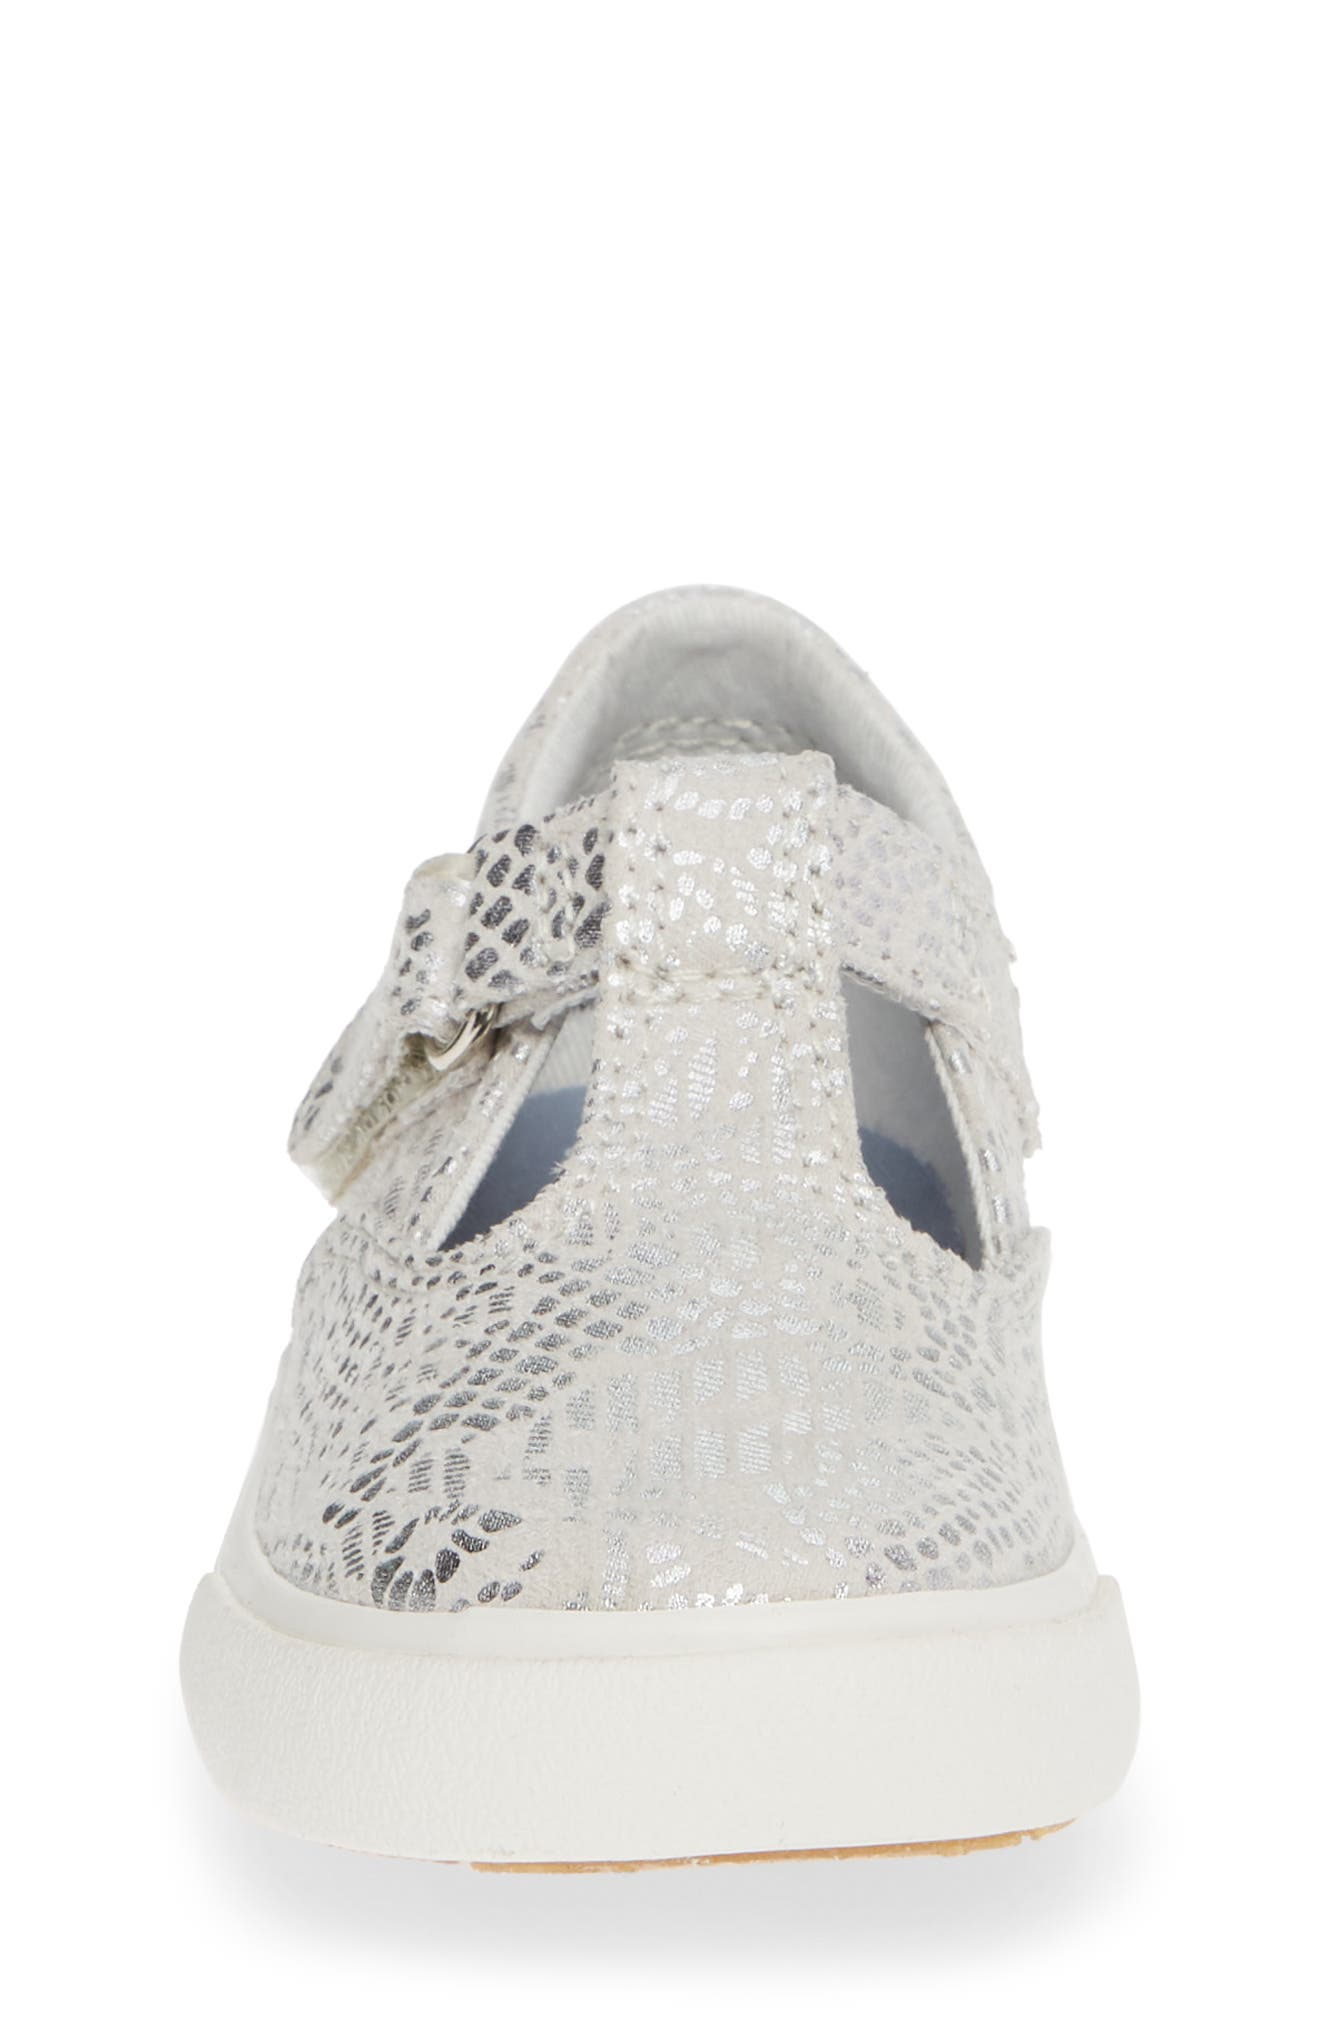 Daphne T-Strap Sneaker,                             Alternate thumbnail 4, color,                             SILVER/ SILVER